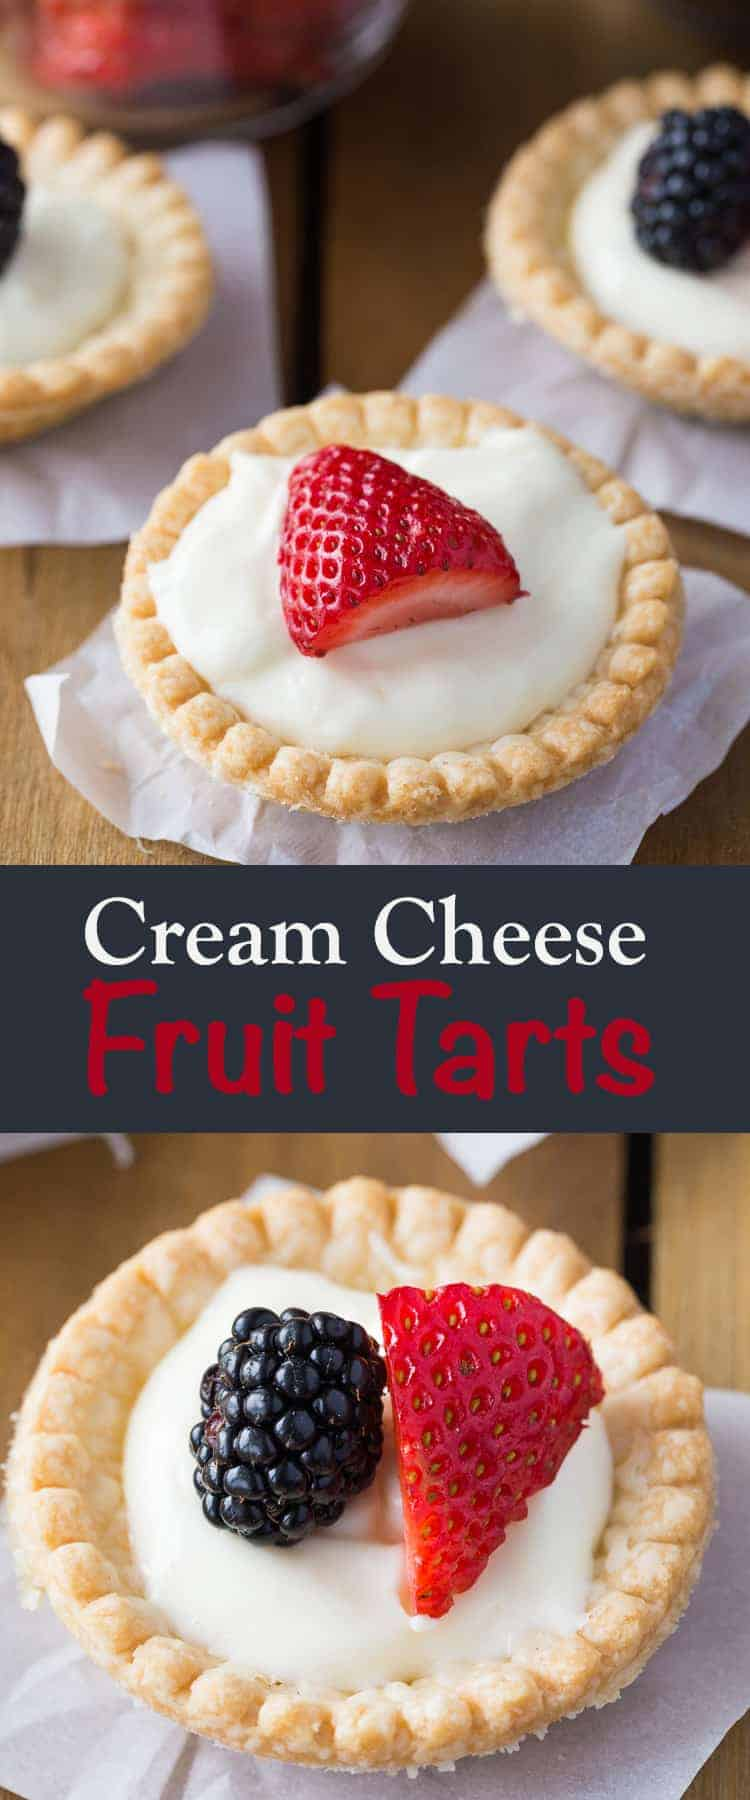 cream cheese fruit tarts dessert recipe